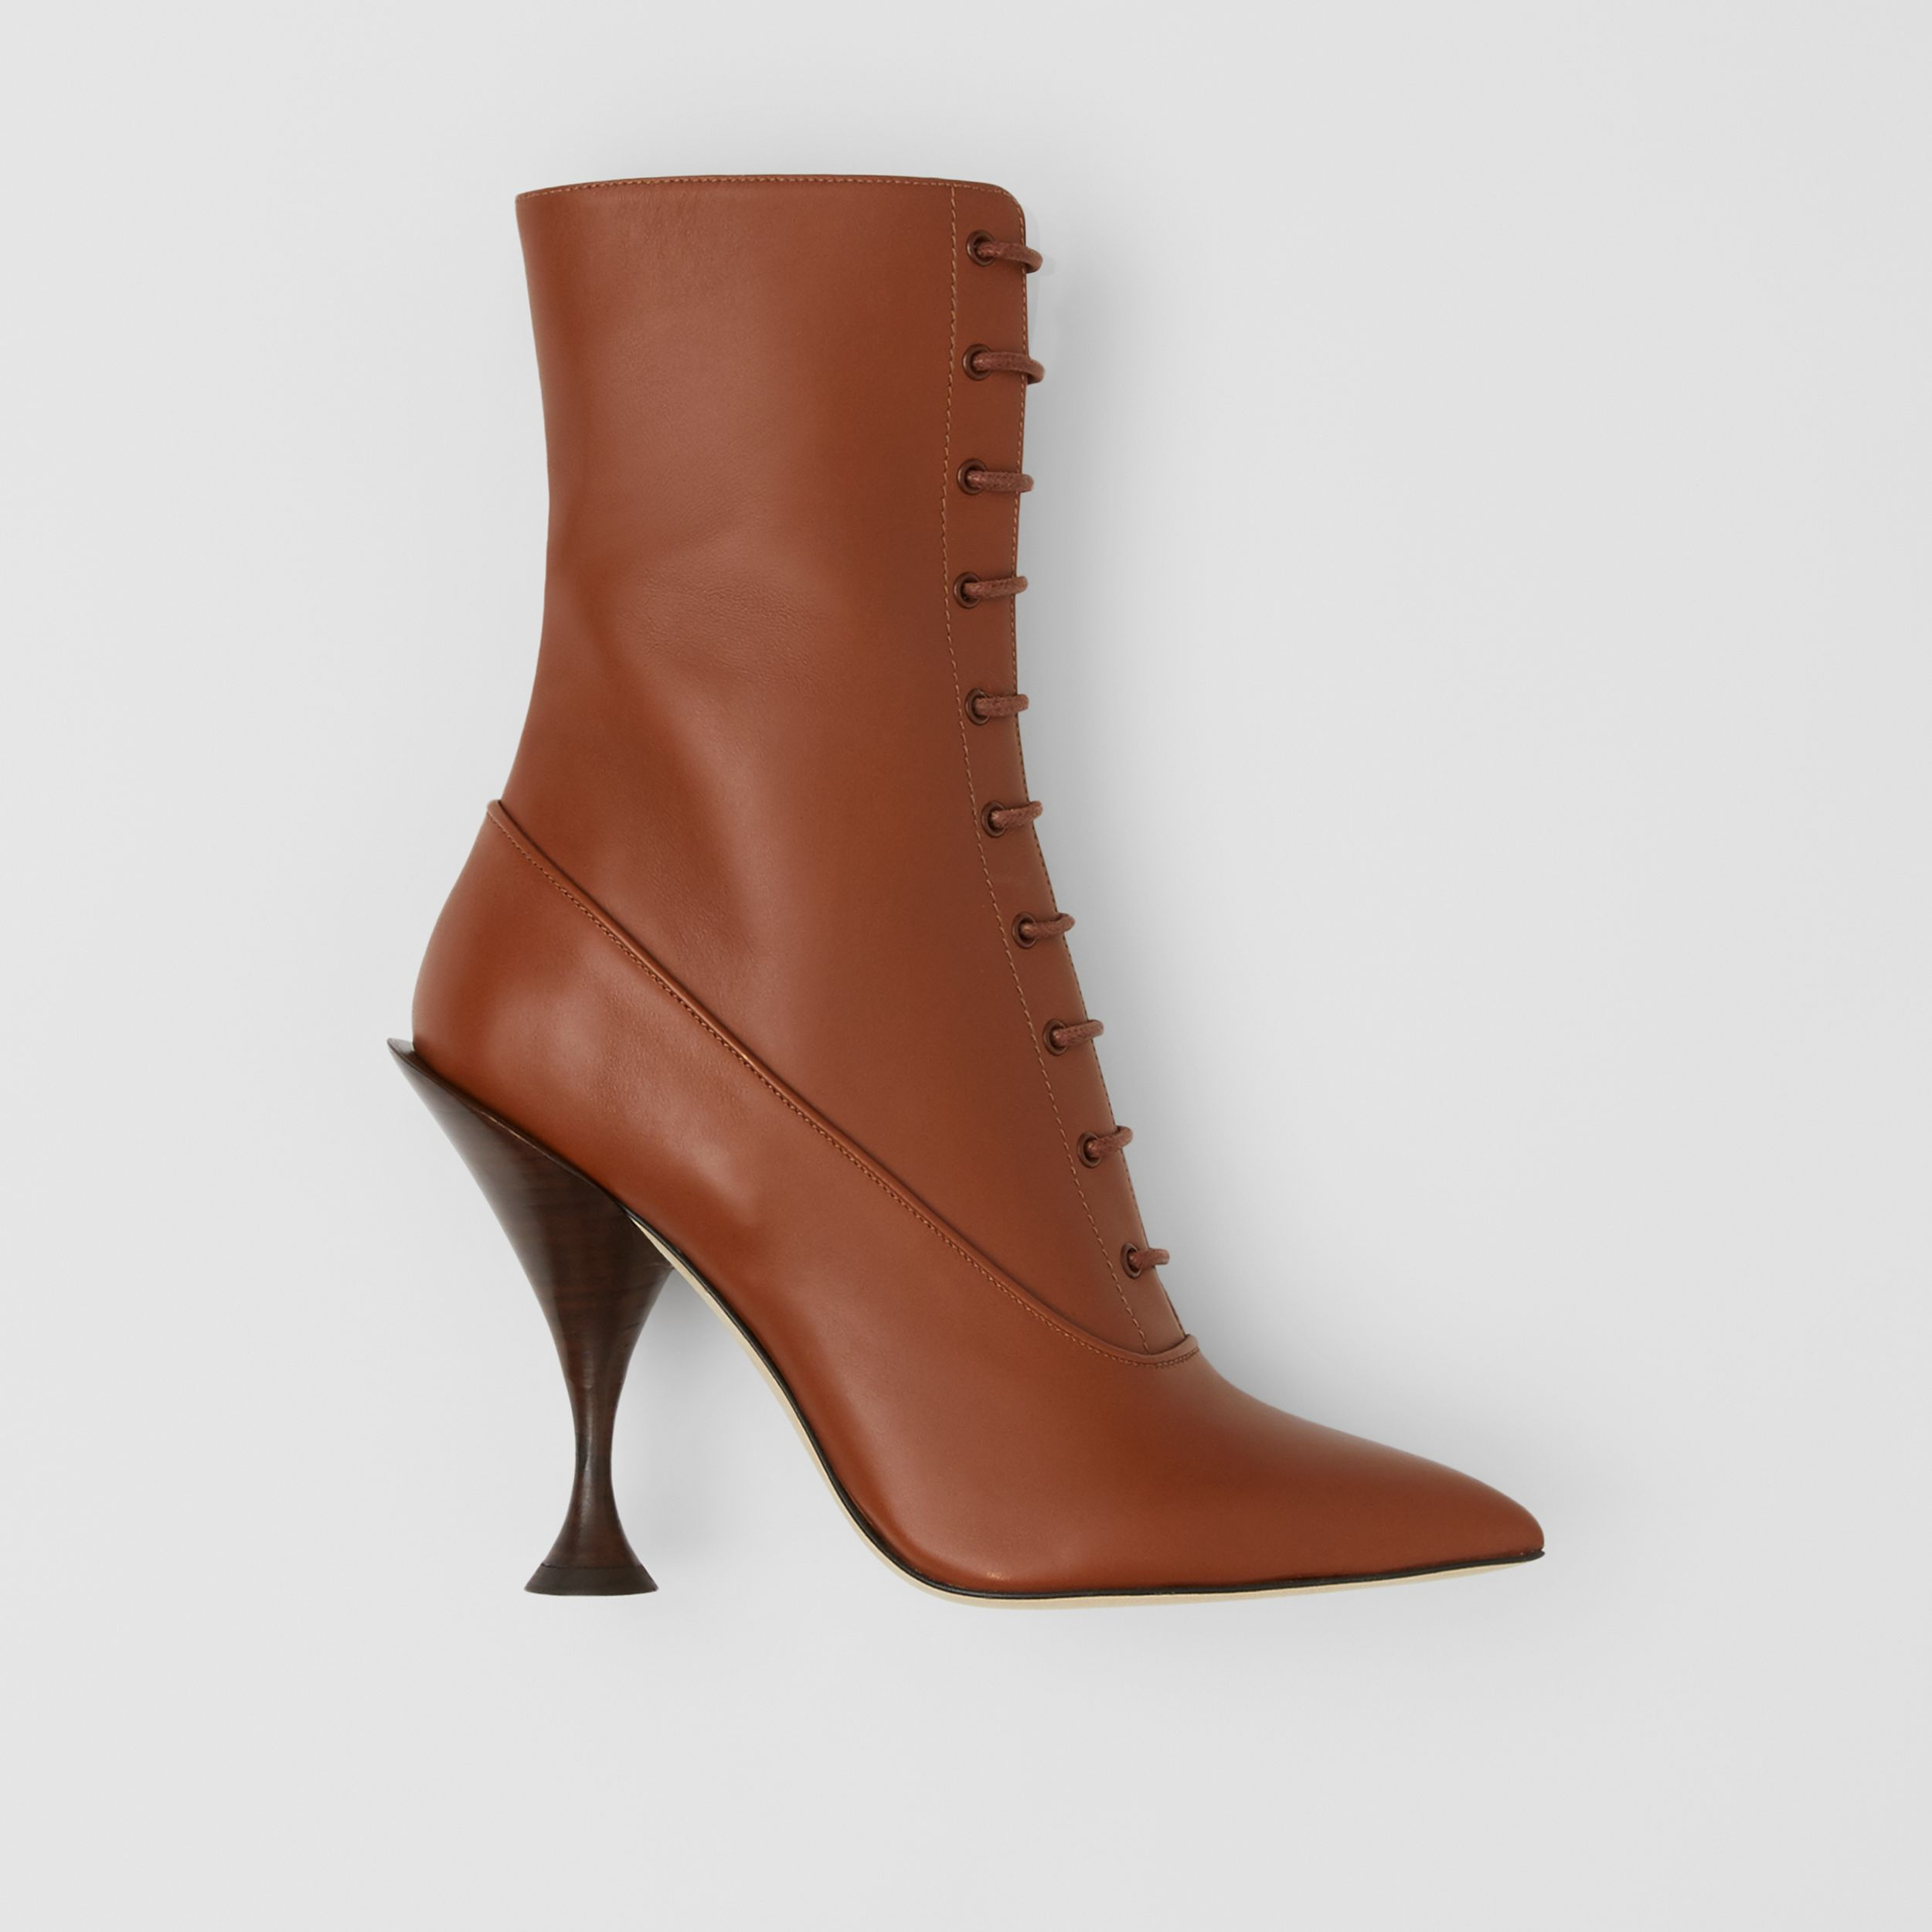 Lambskin Lace-up Ankle Boots in Tan - Women | Burberry Canada - 1